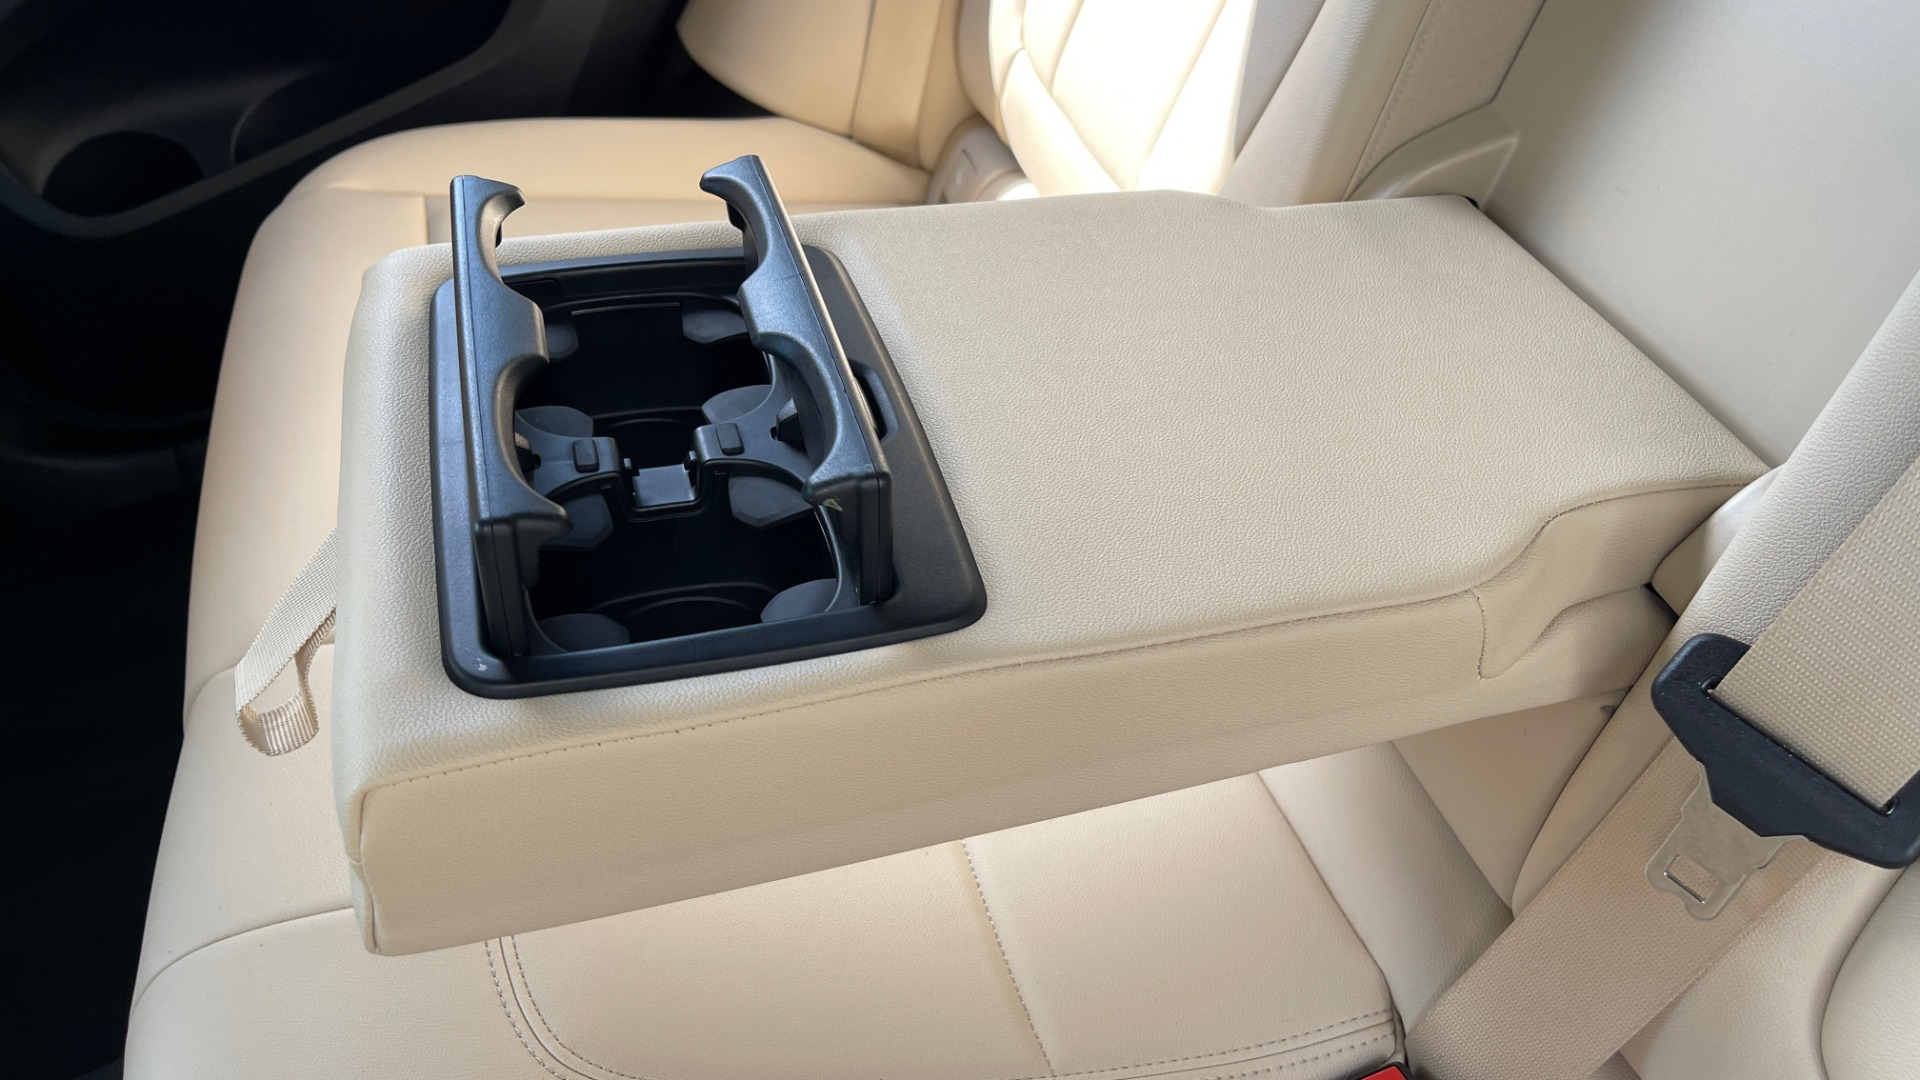 Used 2018 BMW X3 XDRIVE30I CONVENIENCE PKG / HEATED FRONT SEATS / REARVIEW for sale $36,595 at Formula Imports in Charlotte NC 28227 56